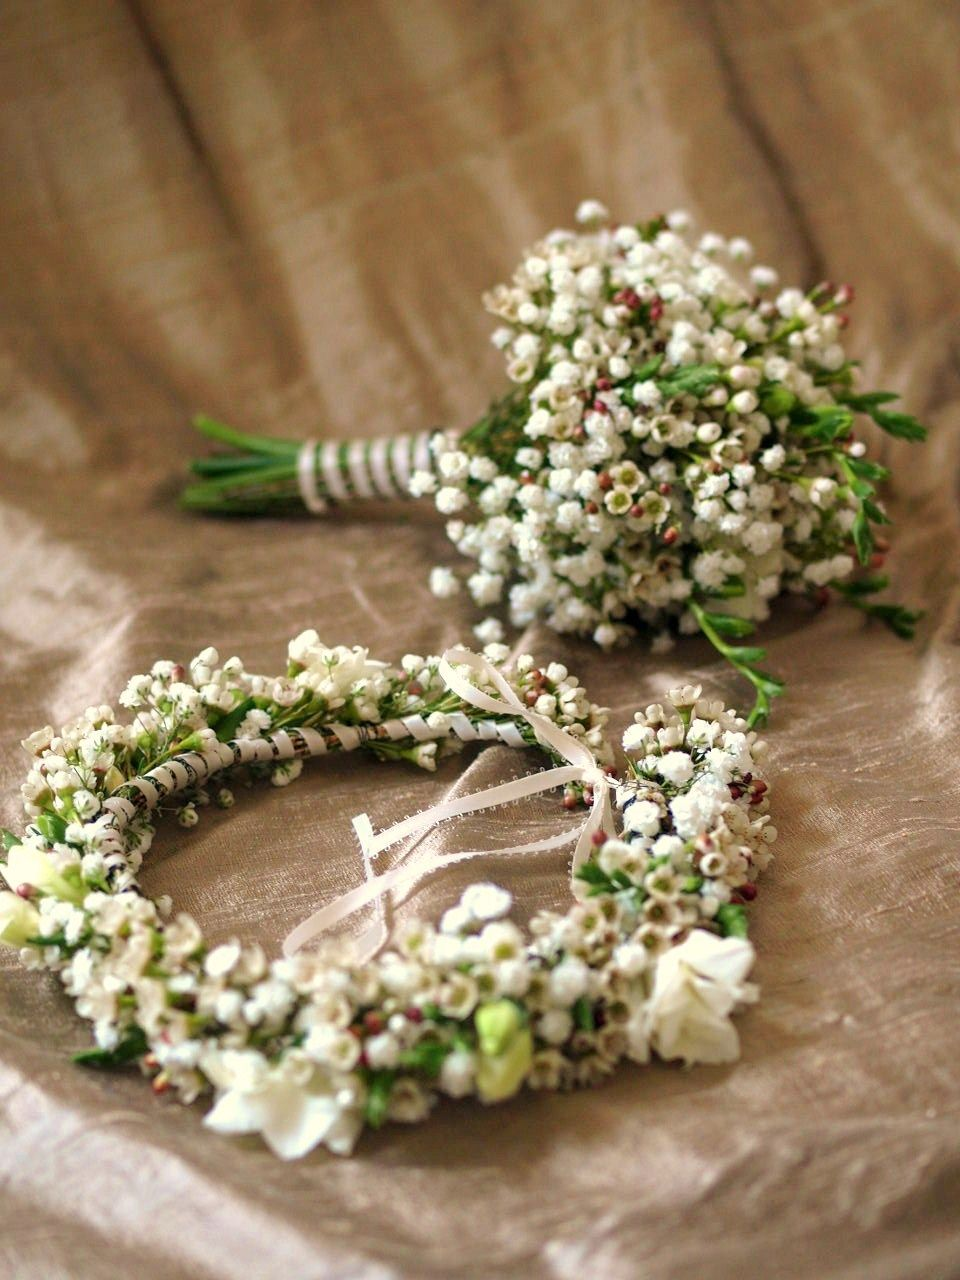 Wax flower and babys breath good for flower girls coronet and wax flower and babys breath good for flower girls coronet and bouquets izmirmasajfo